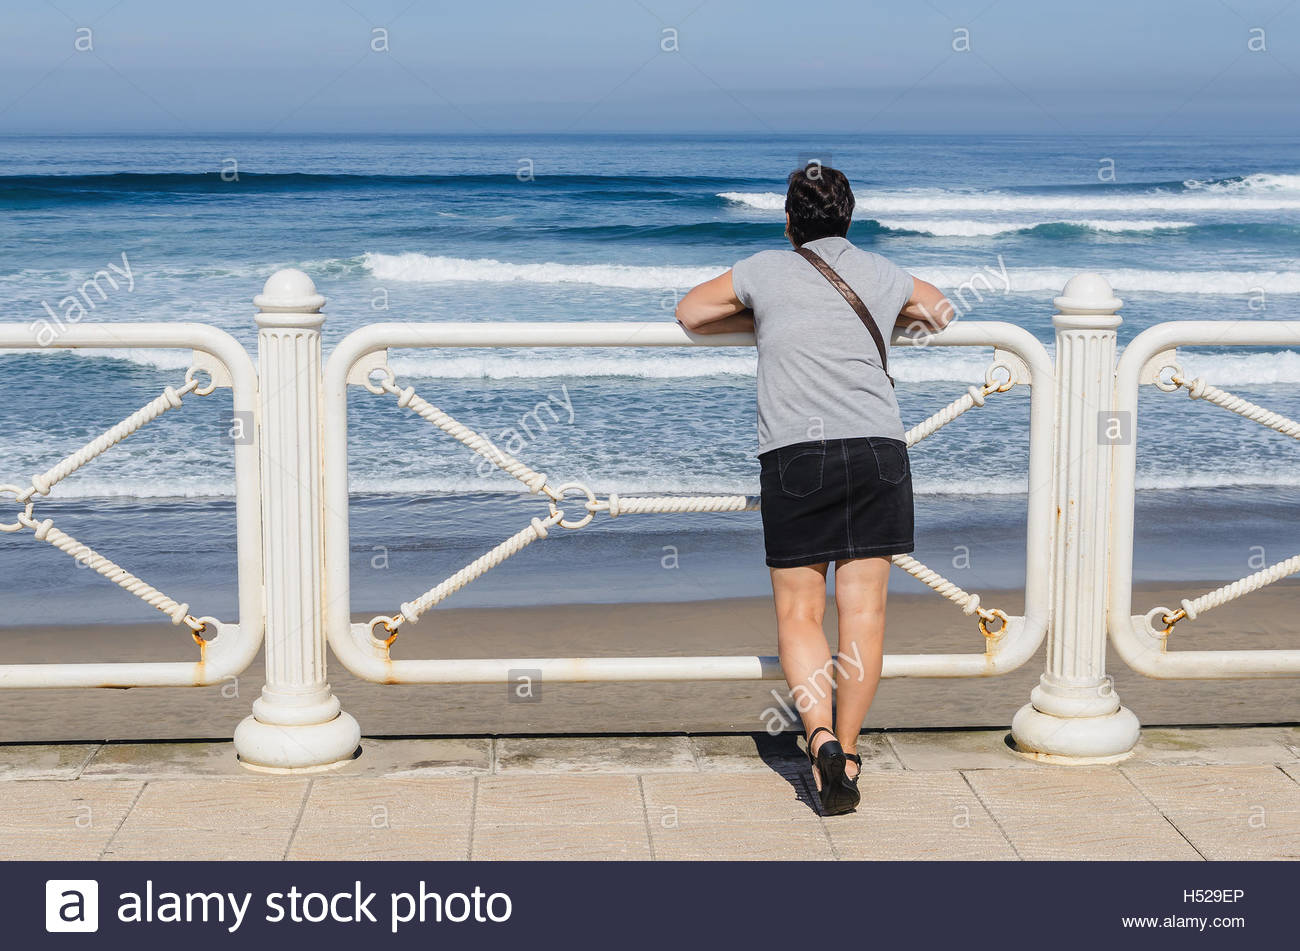 Short haired woman wearing miniskirt looking at the sea from the promenade - Stock Image